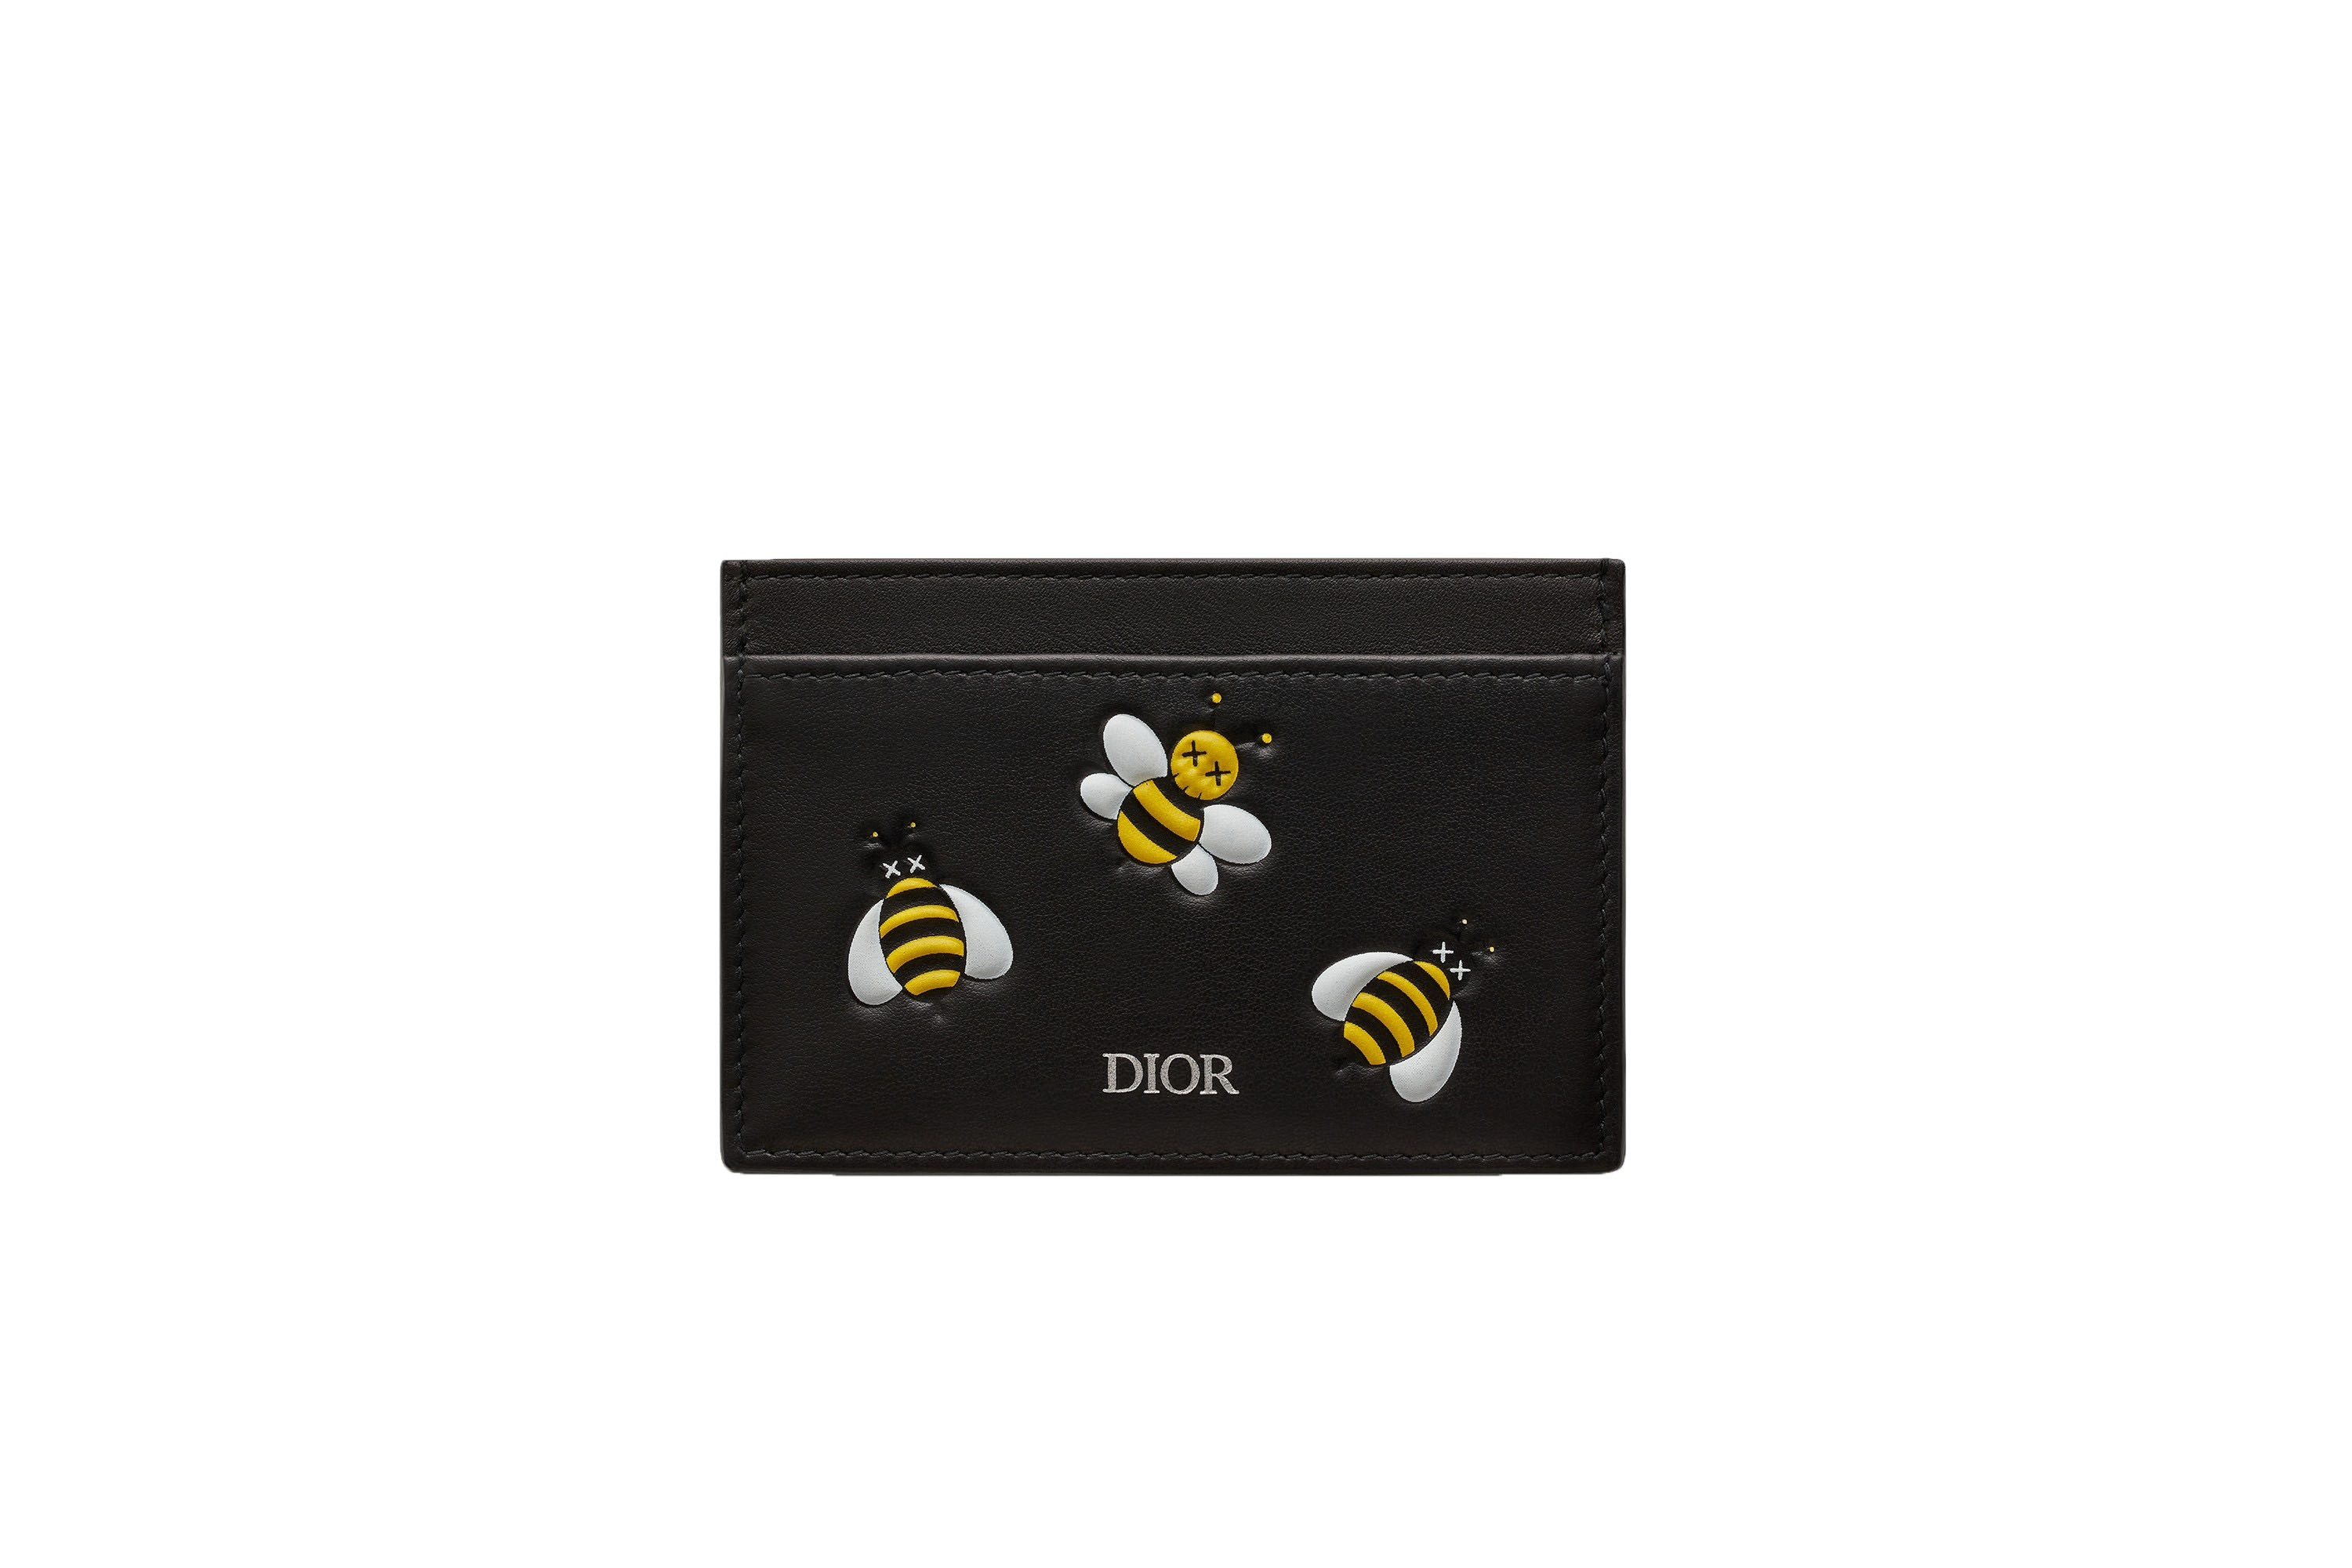 Dior x Kaws Card Holder Yellow Bees Black